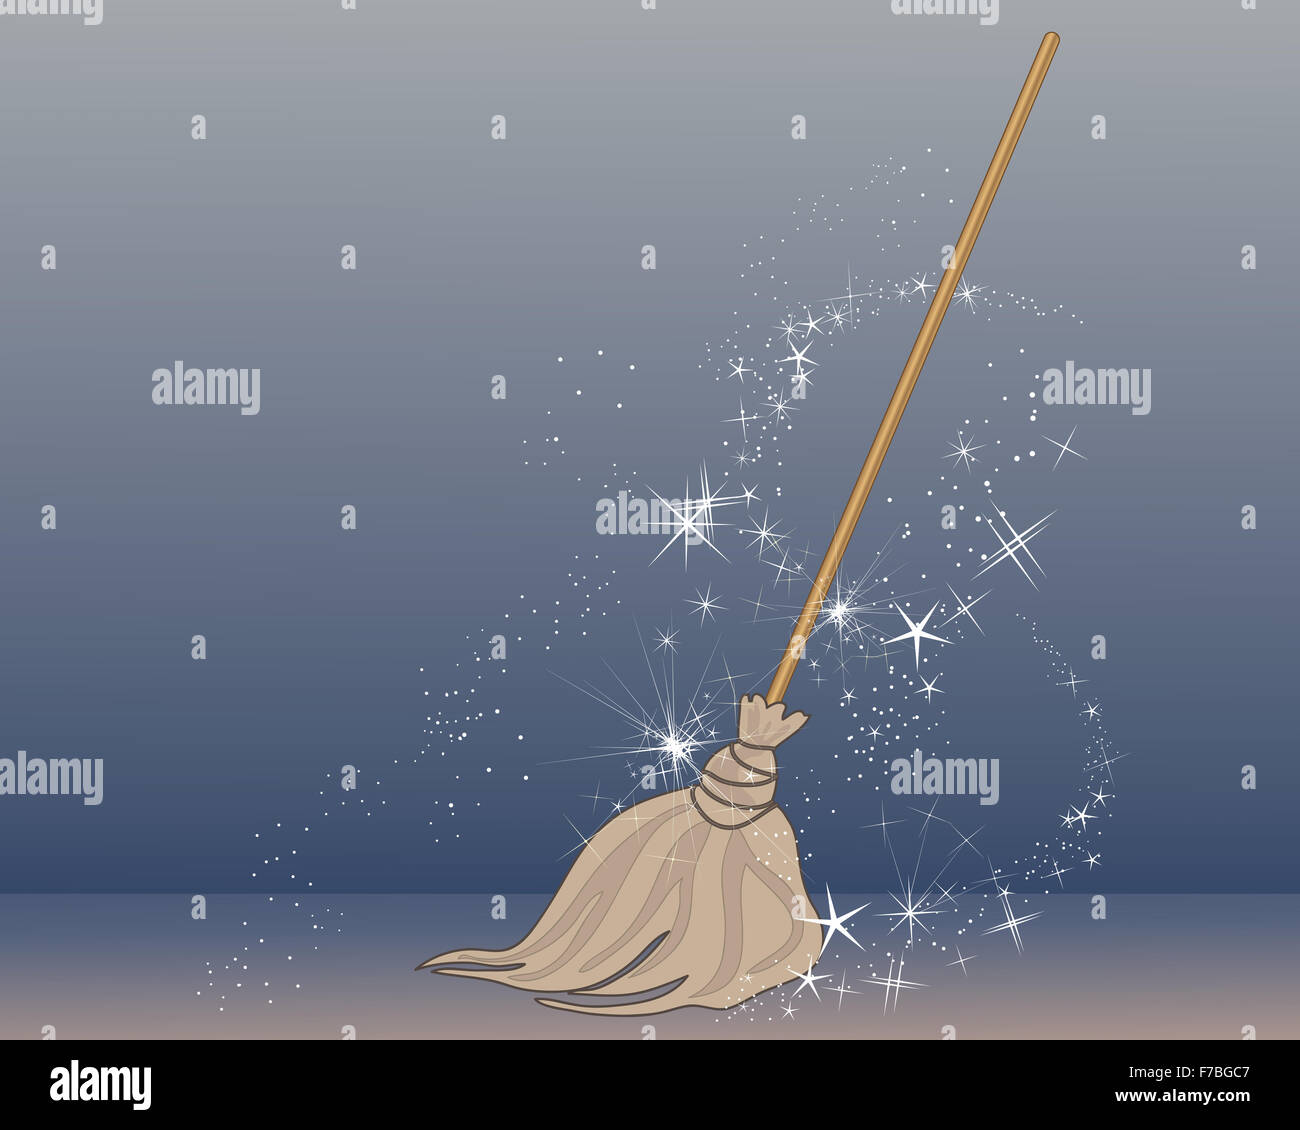 an illustration of a magic broom in an old fashioned style coming to life with magic sparkles on a blue background - Stock Image